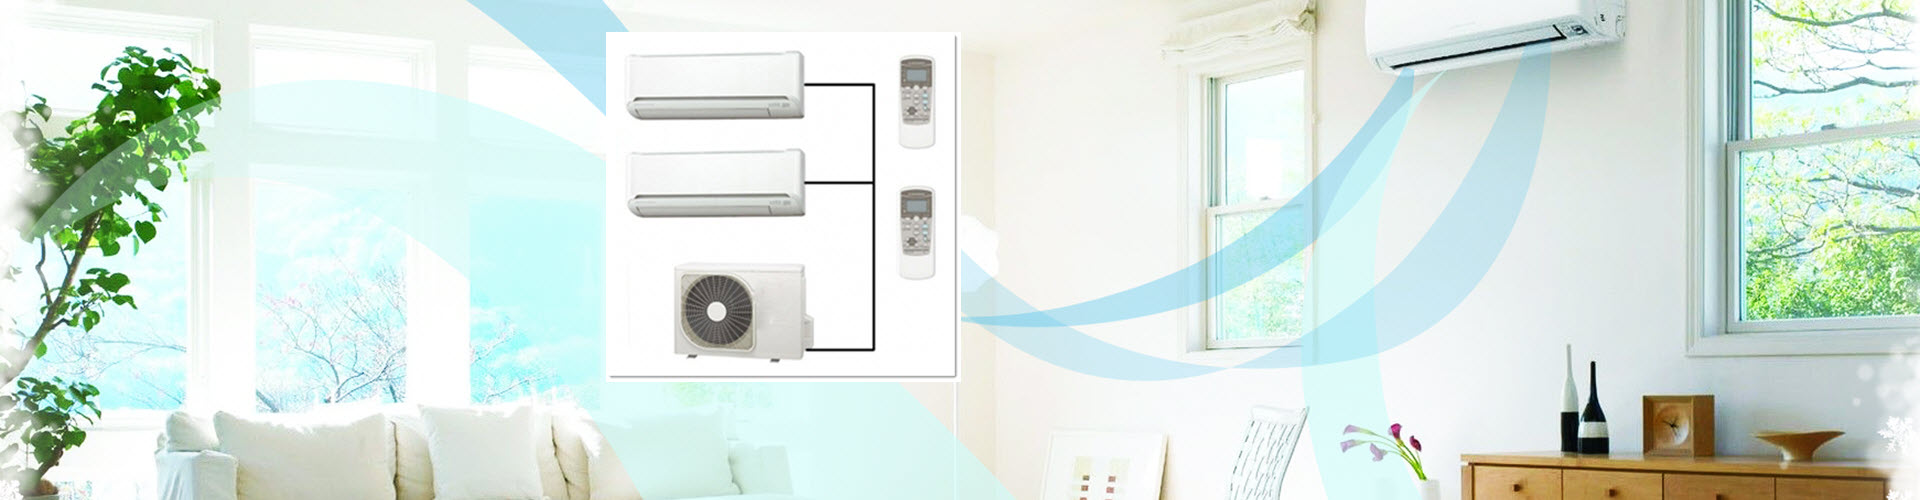 Fujitsu air conditioner installed in a room and shown in a box-image